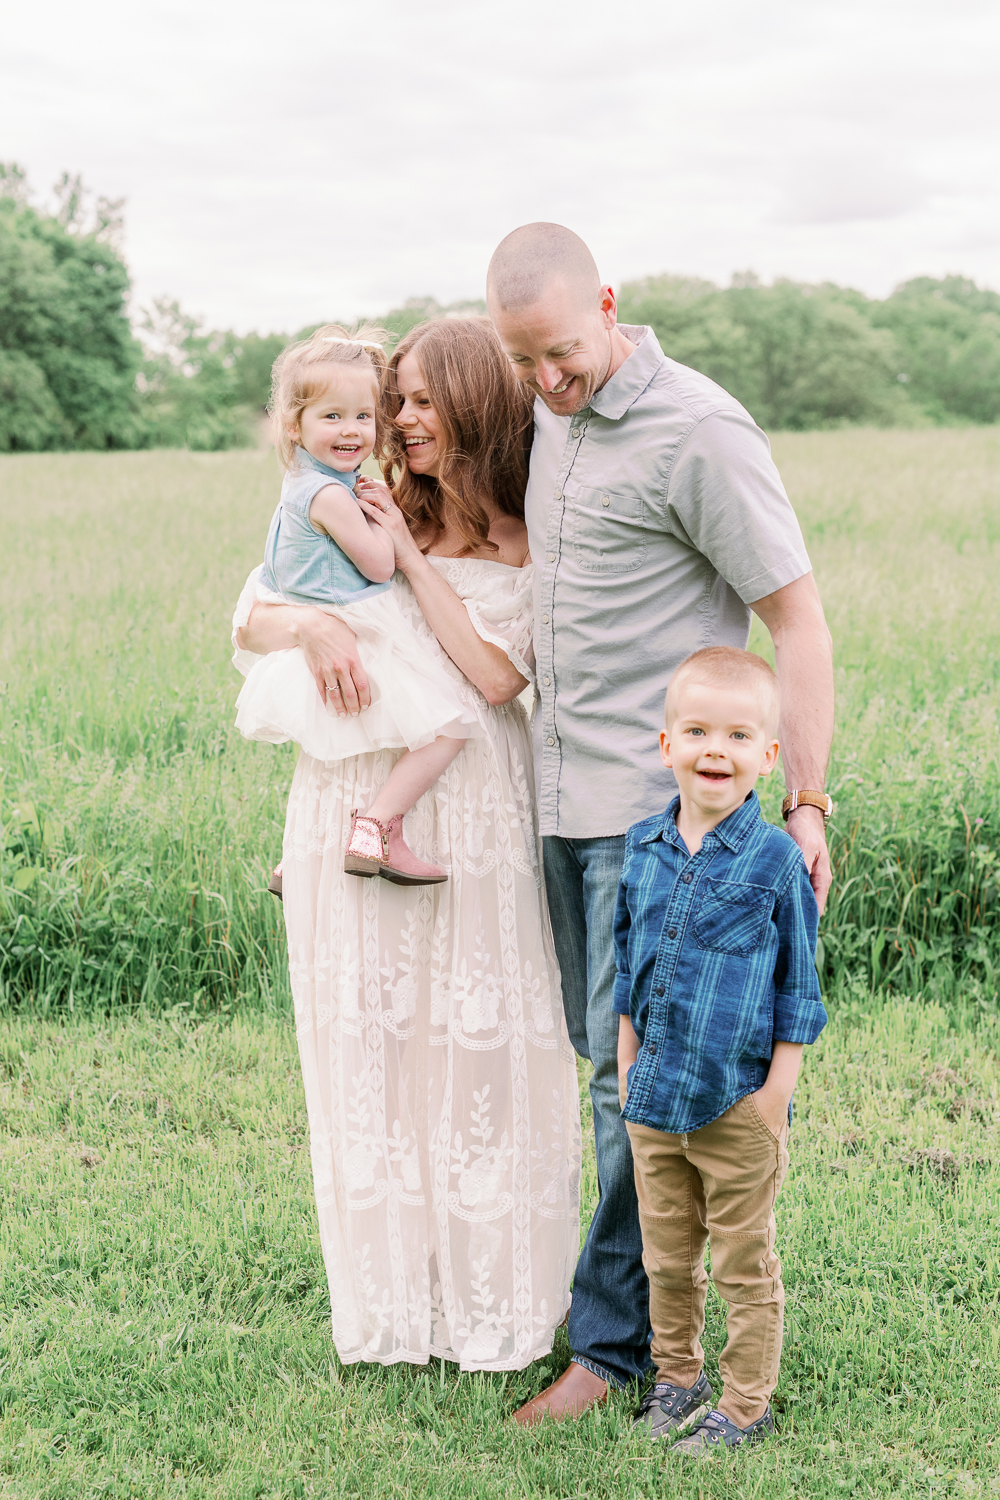 Chicago Naples Lifestyle Family Photographer – St James Farm Family Photos-22